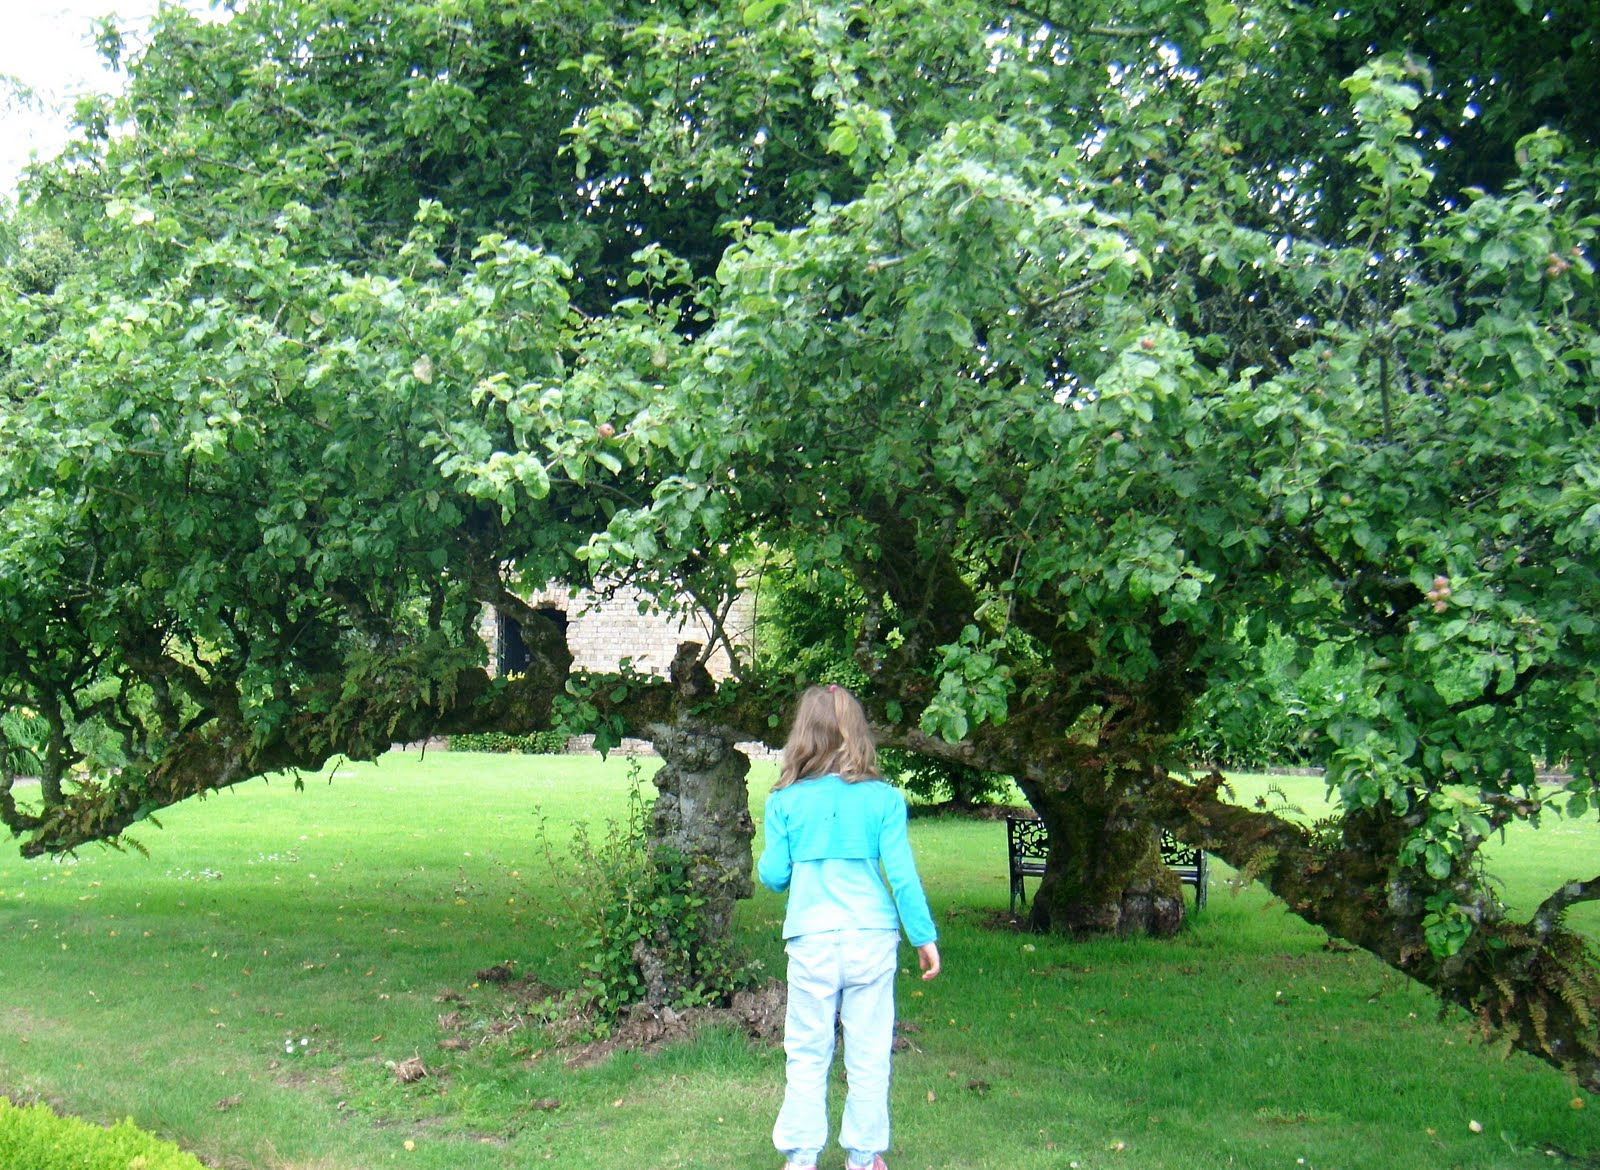 Fences Of Fruit Trees Resilience